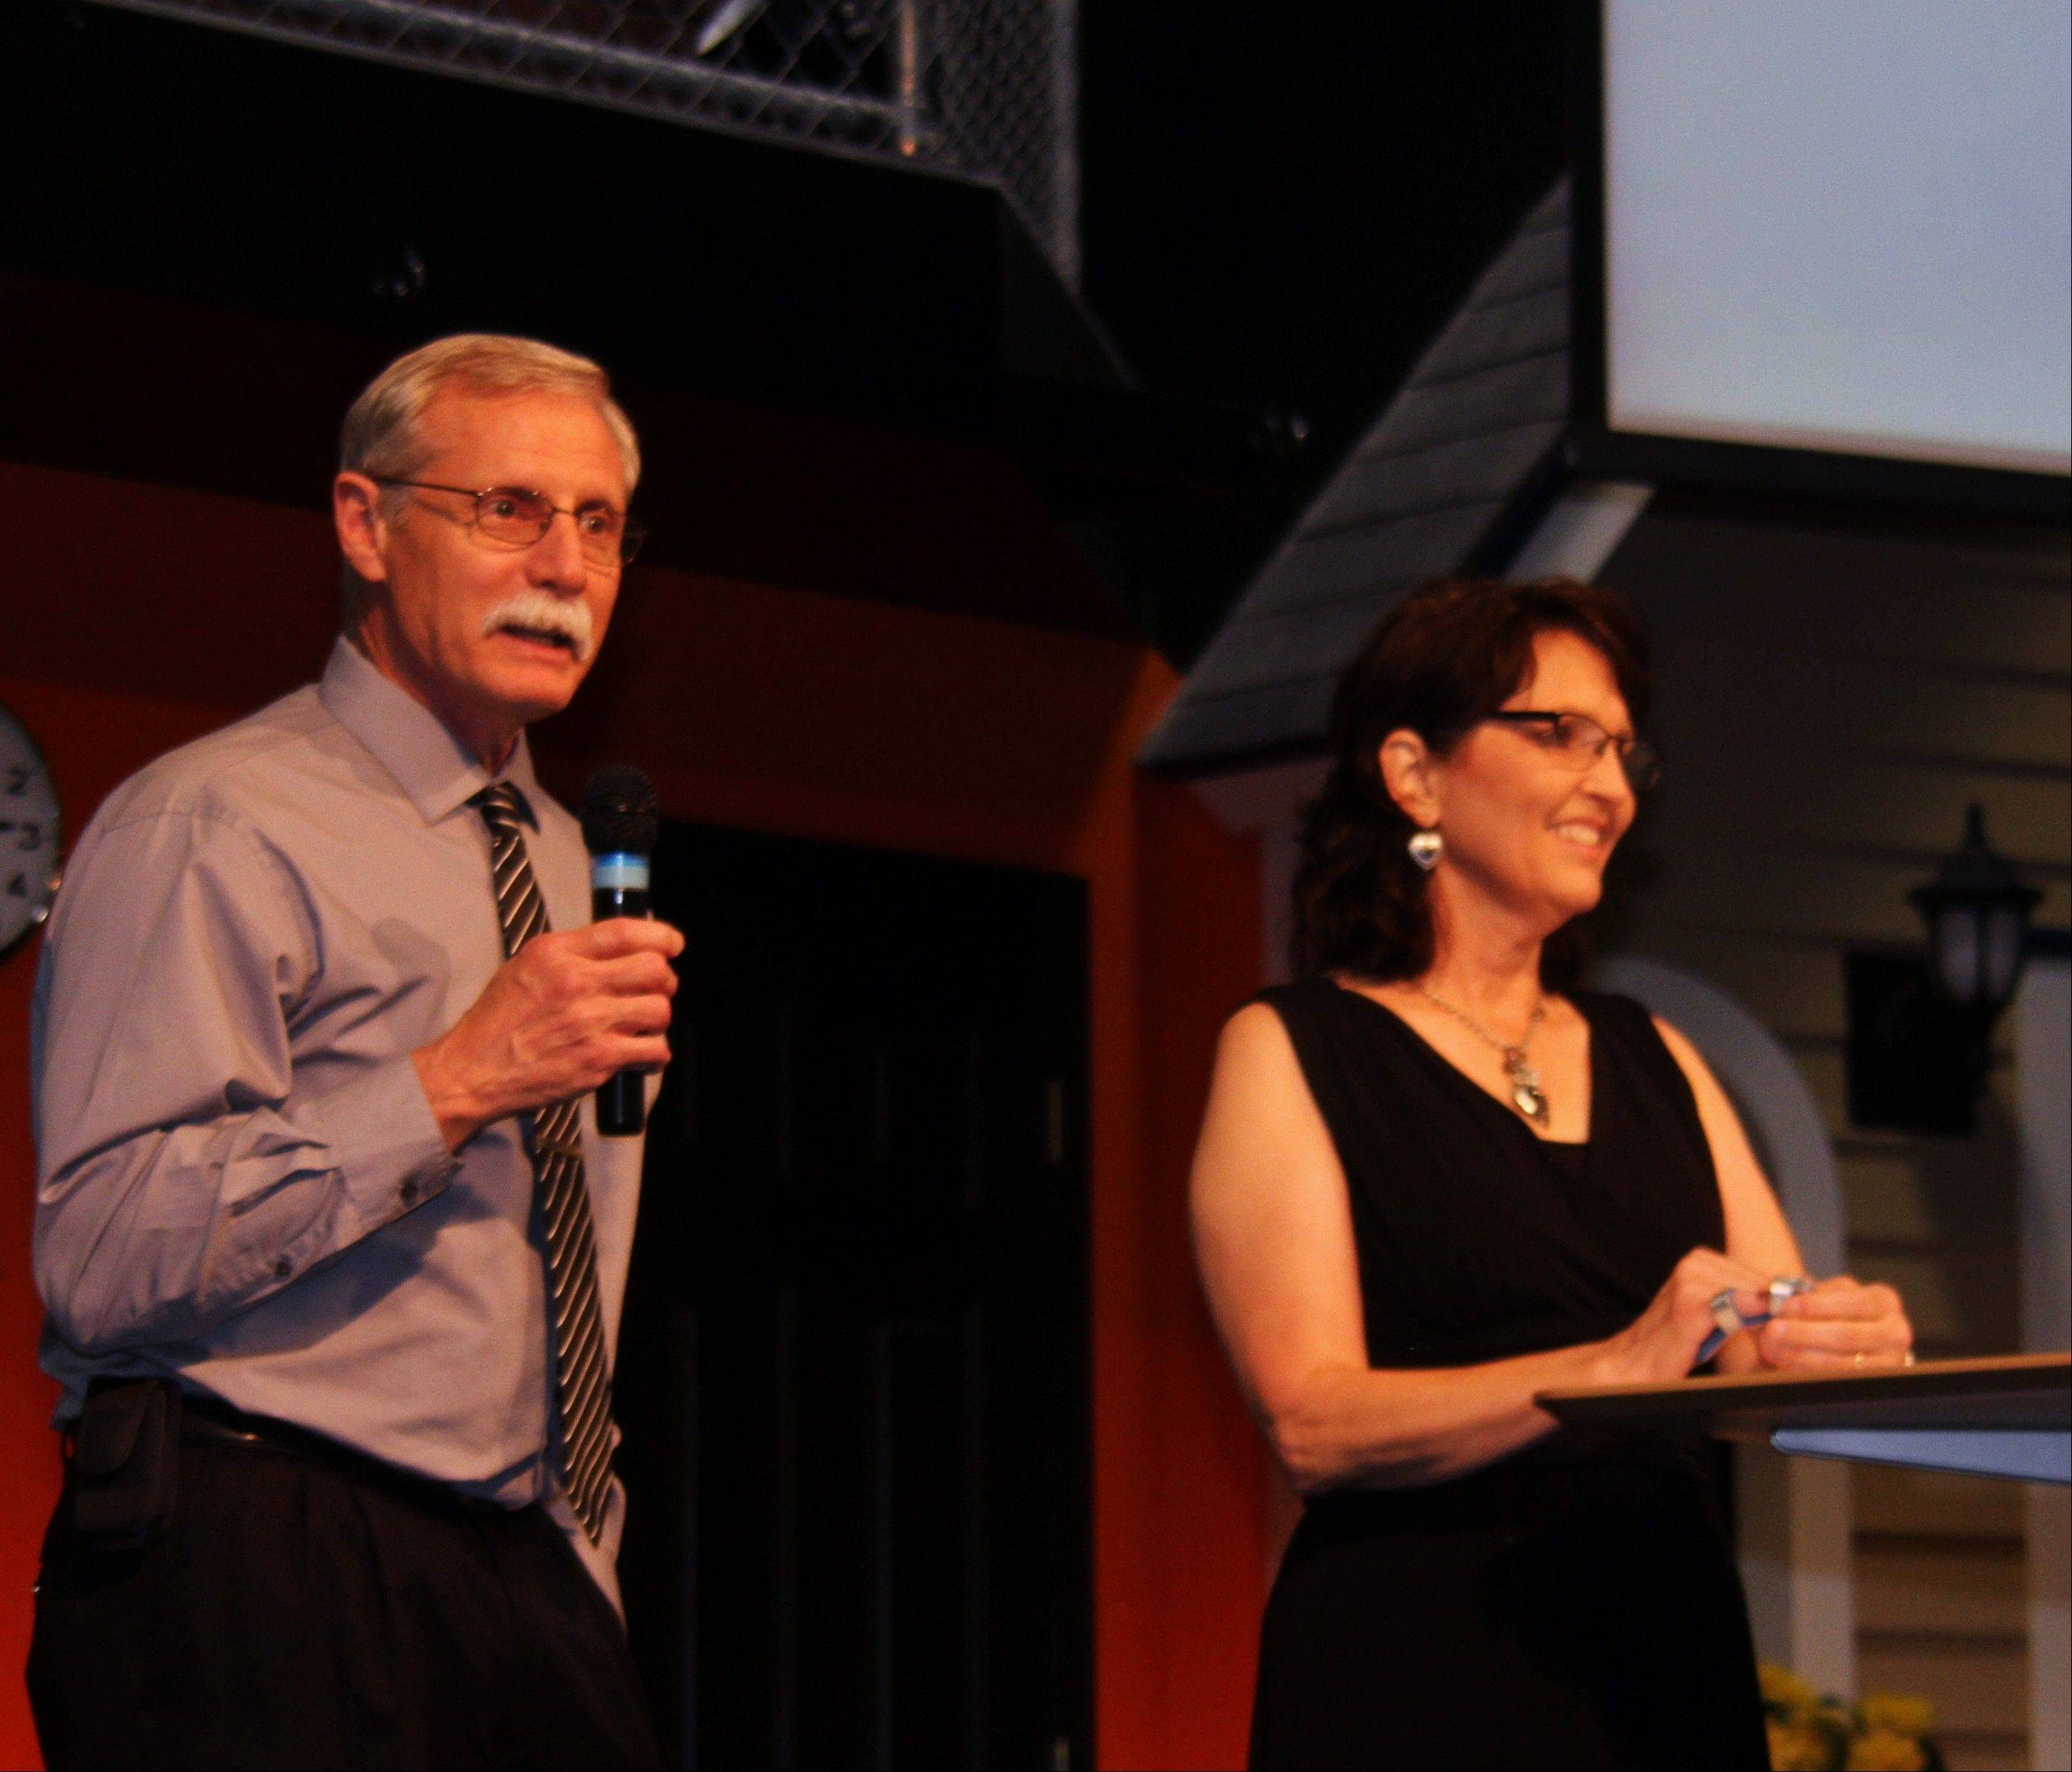 John and Judy Prim address guests at a recent fundraiser at a church in Elk Grove Village, telling them of their dream to build a school and expand their residential program.